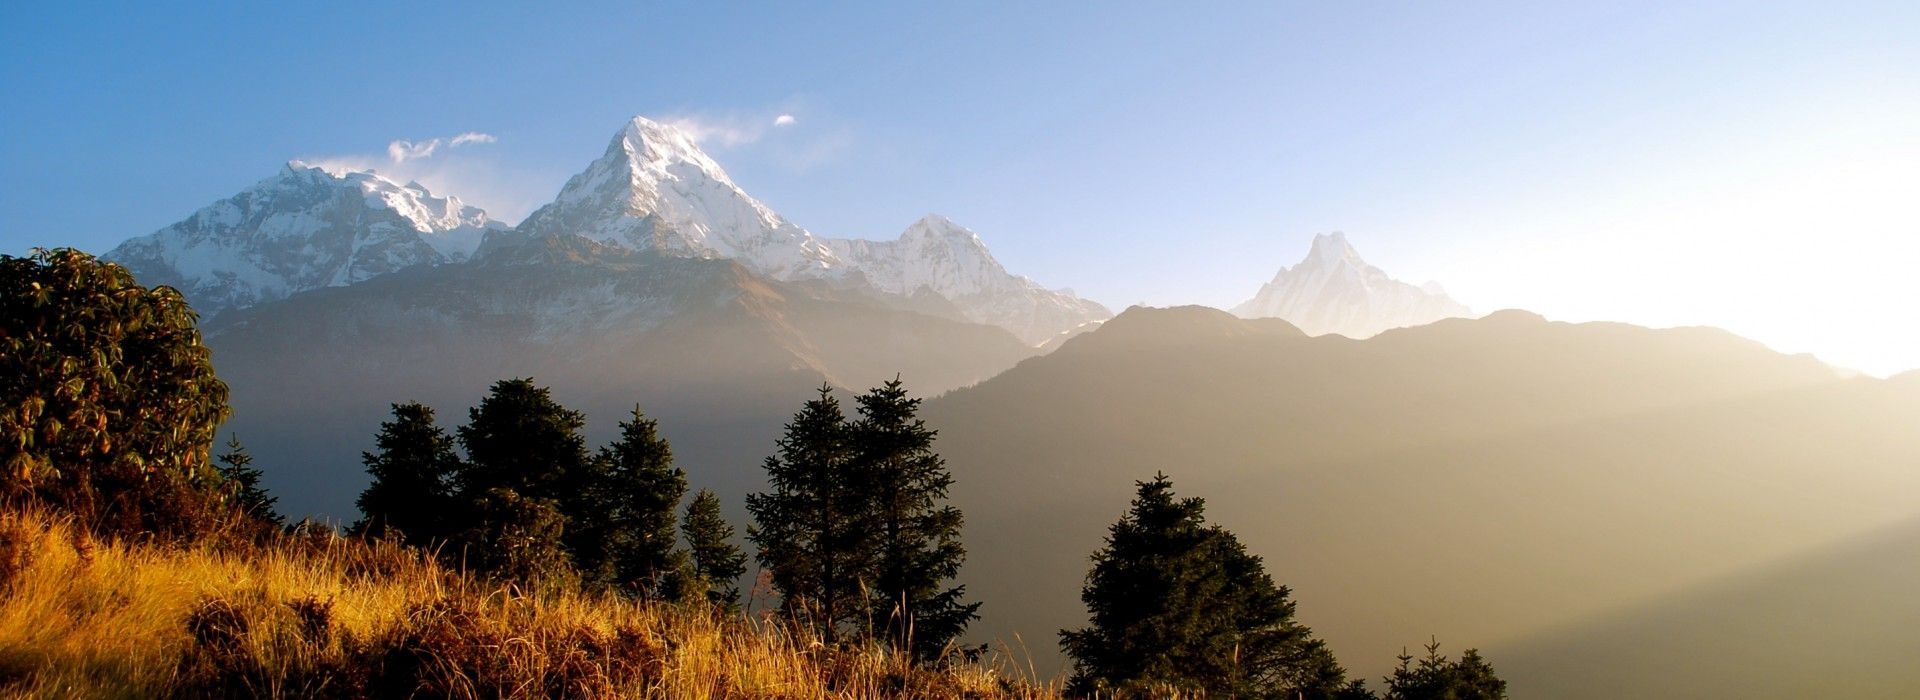 Trekking Tours in Everest Base Camp trek